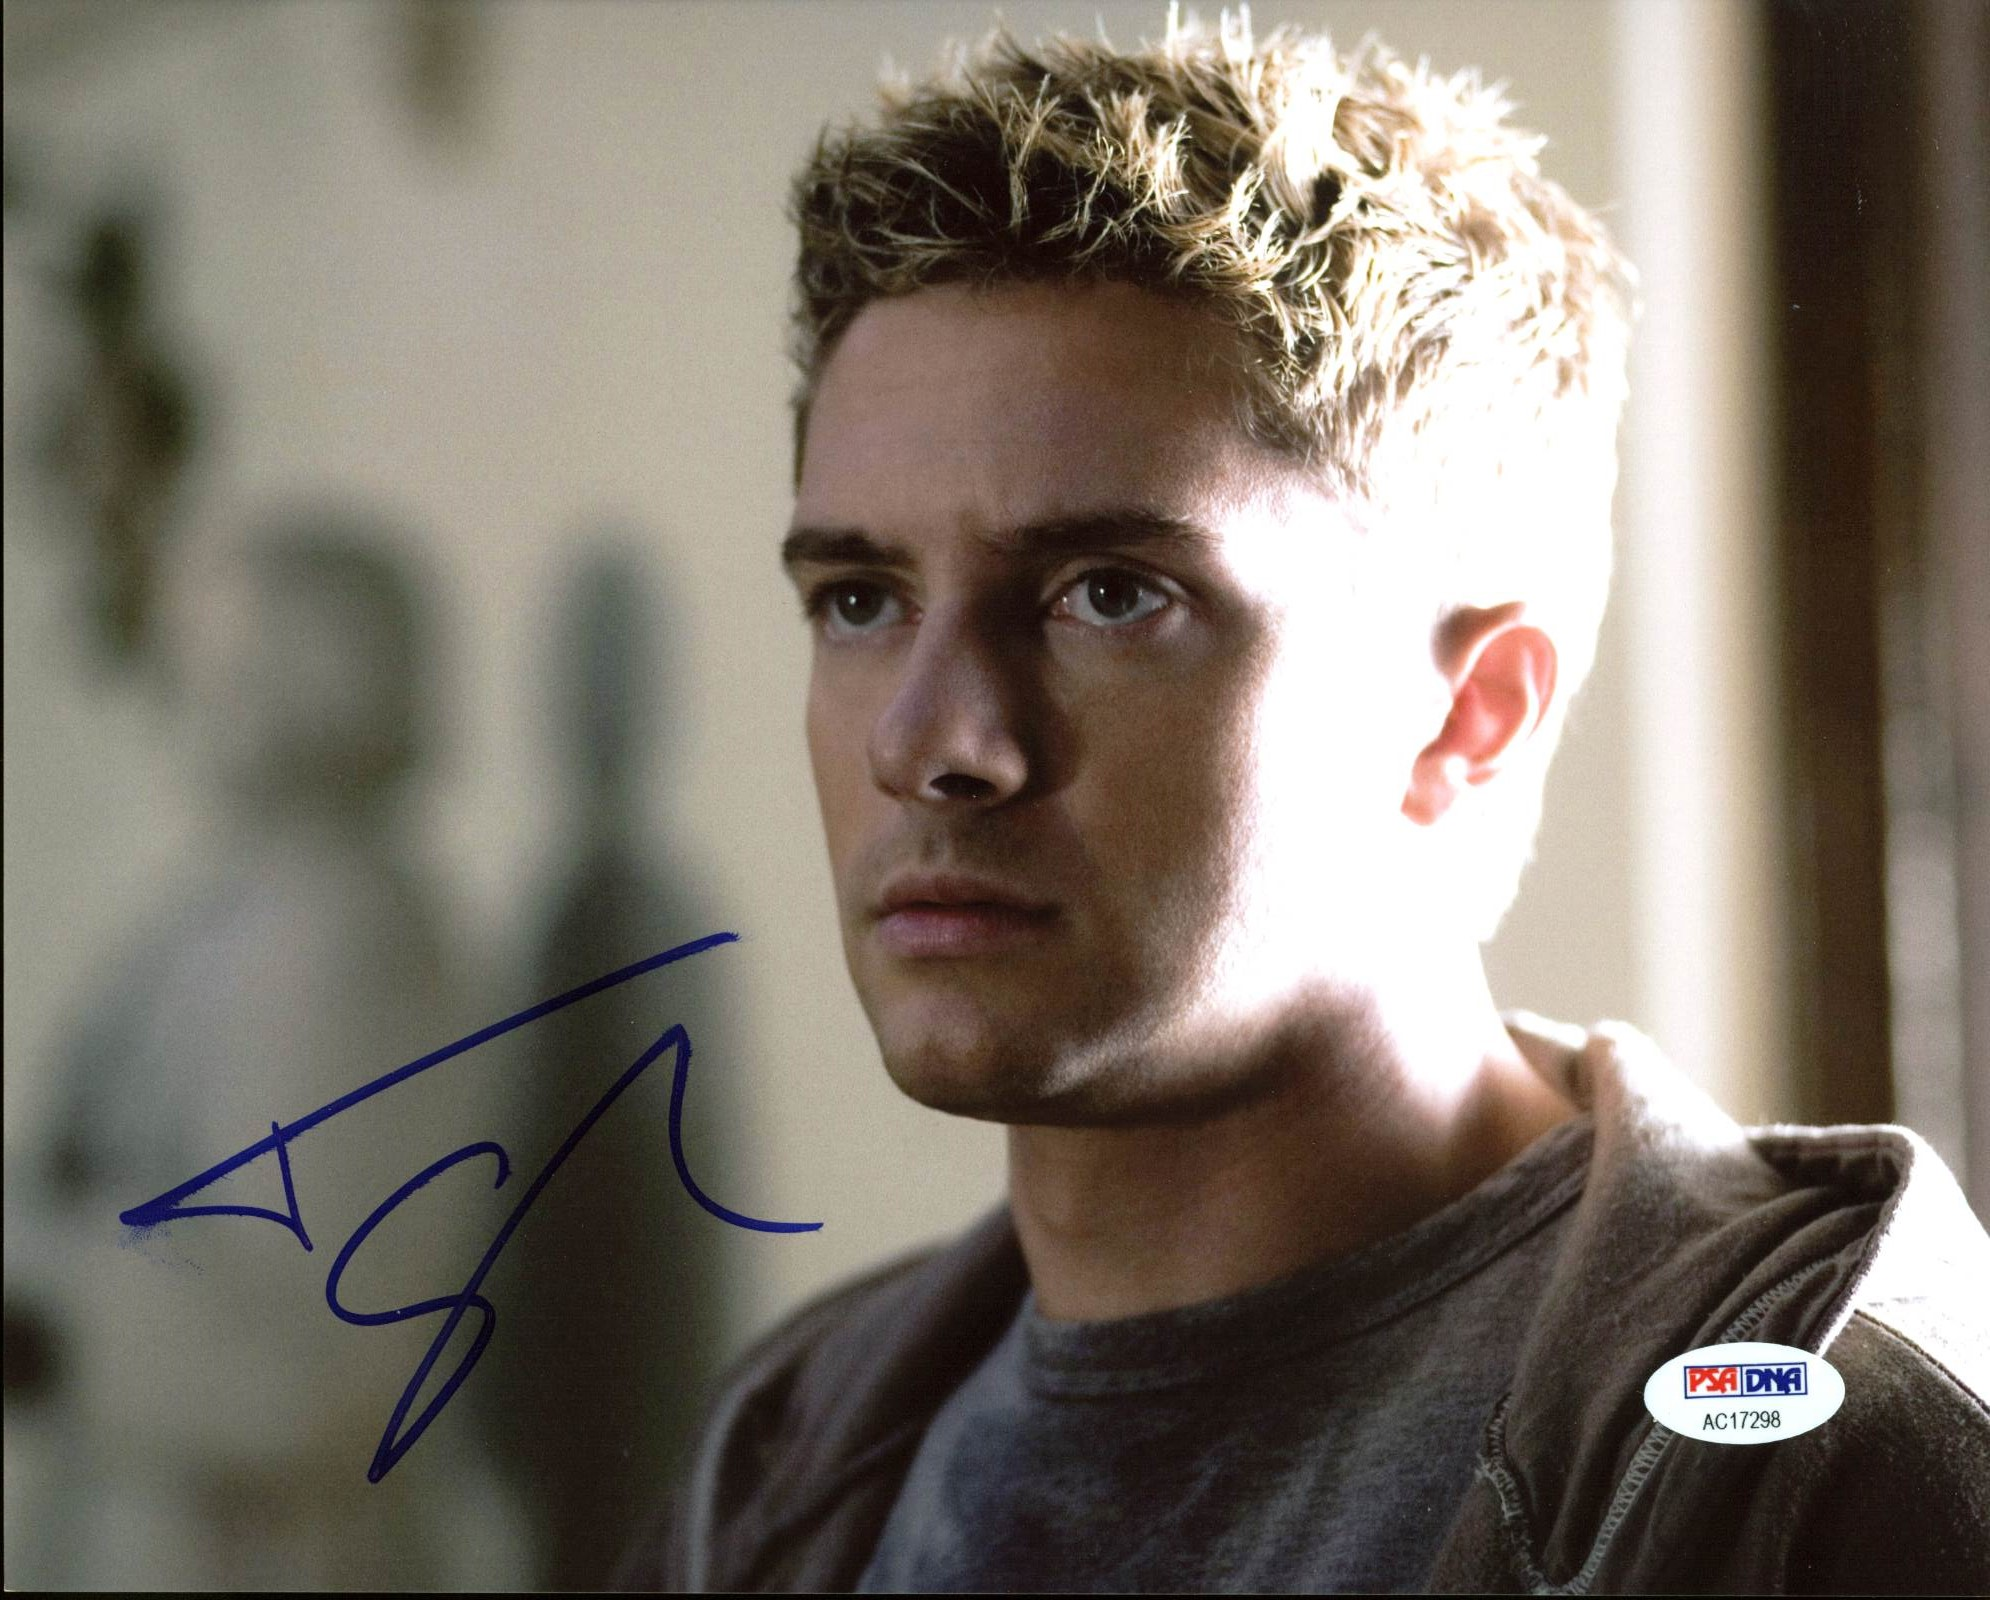 Topher Grace Autographed 8x10 Photo VIP-AC17298